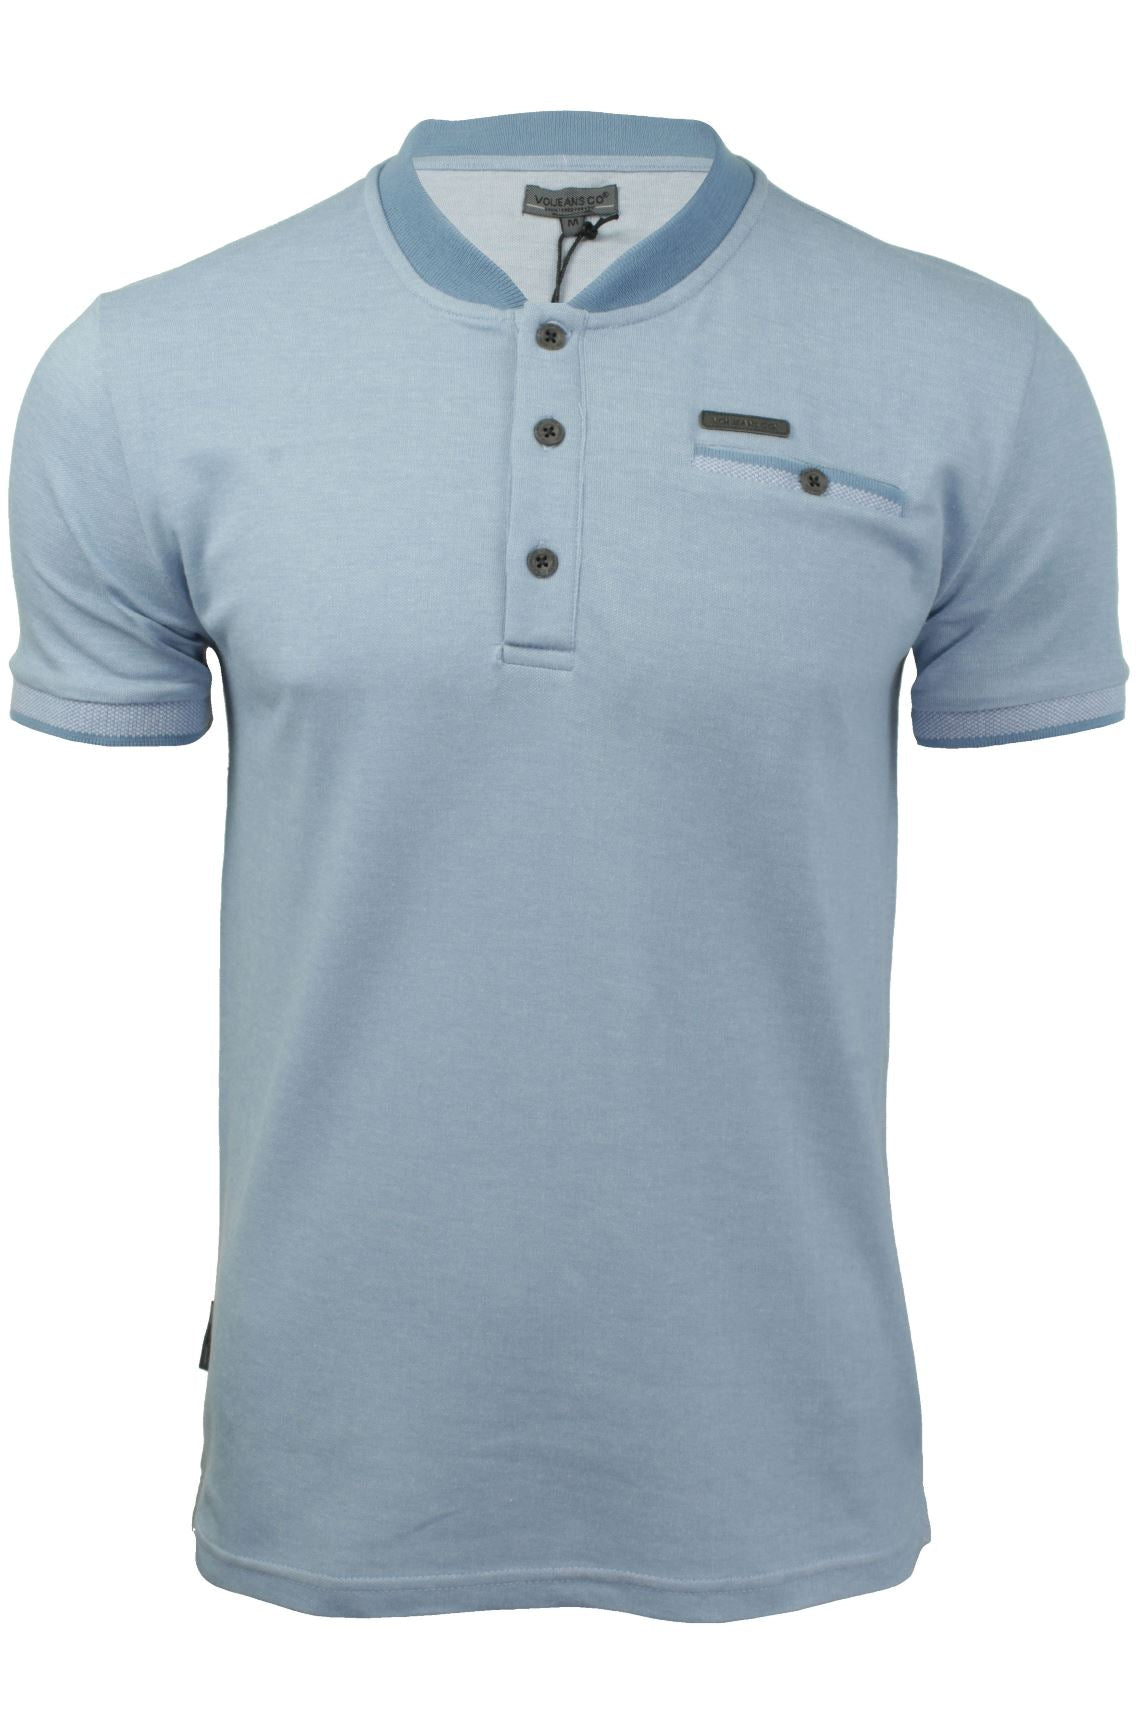 Mens Polo T-Shirt by Voi Jeans 'Lutz'-Main Image